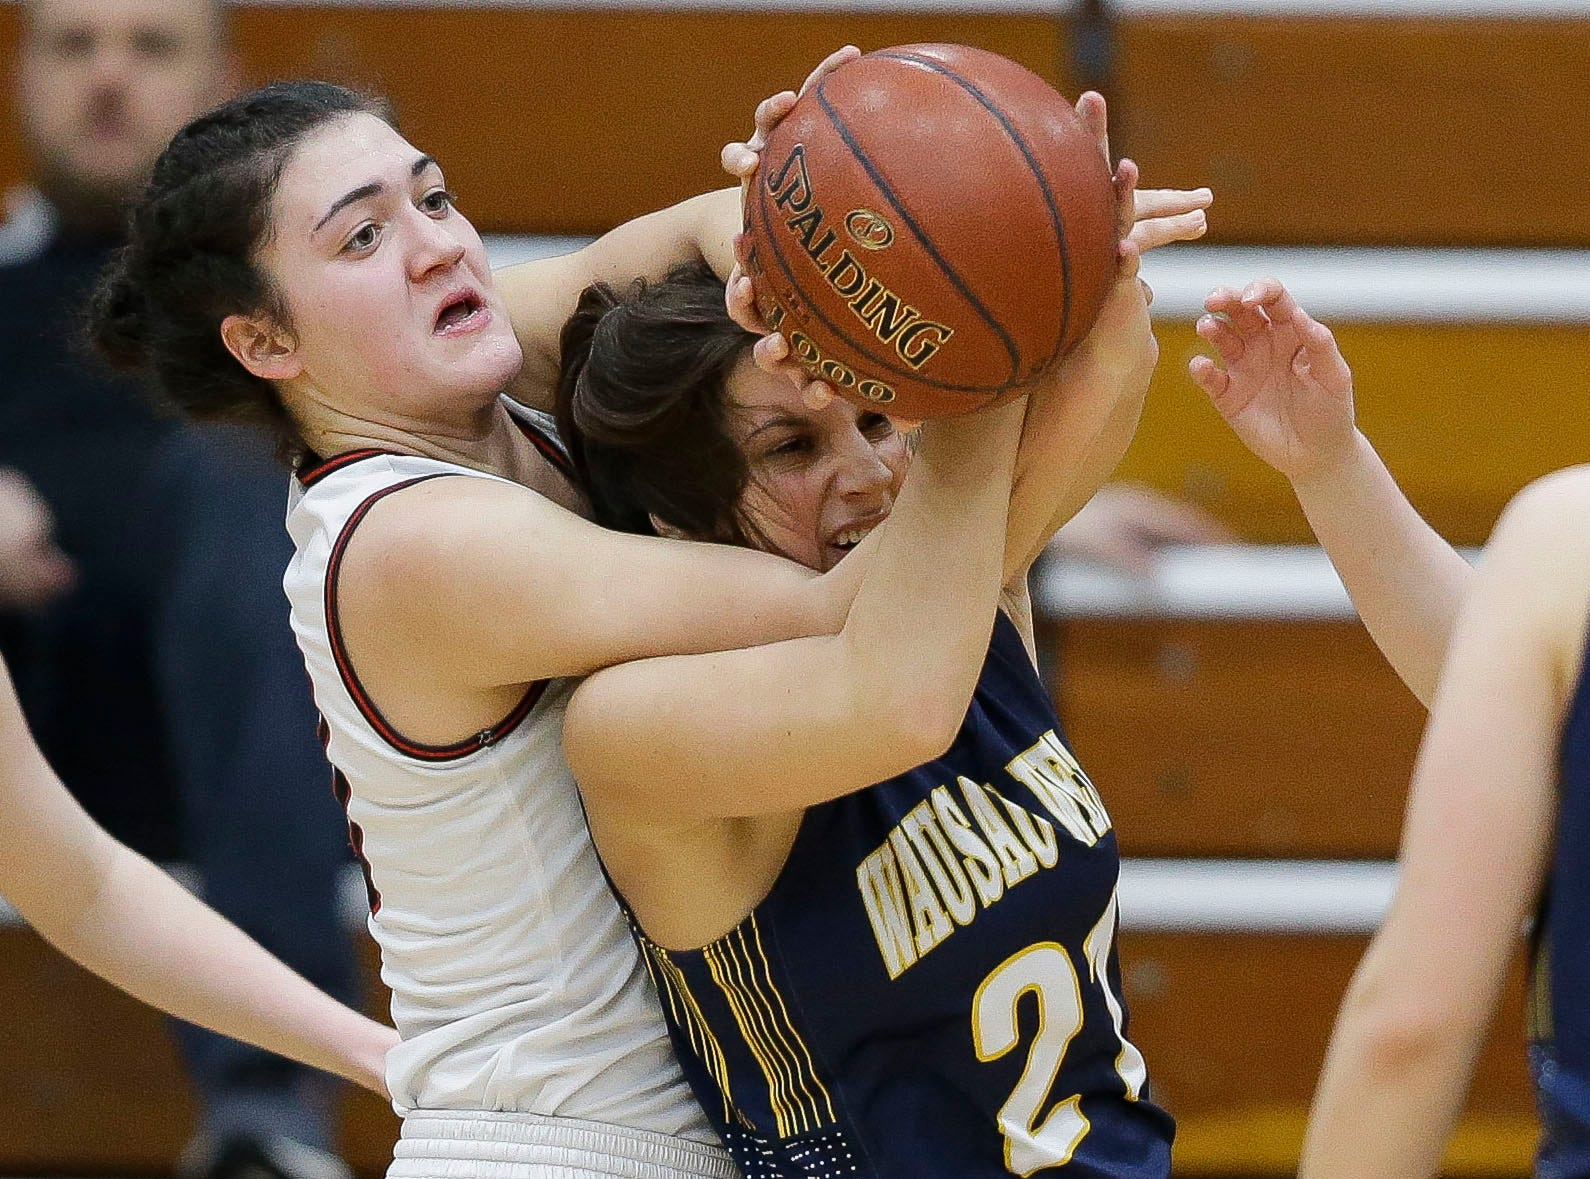 SPASH's Leah Earnest (left) fights for a rebound with Wausau West's Shpresa Shabani (21) on Thursday, February 14, 2019, at SPASH in Stevens Point, Wis.Tork Mason/USA TODAY NETWORK-Wisconsin